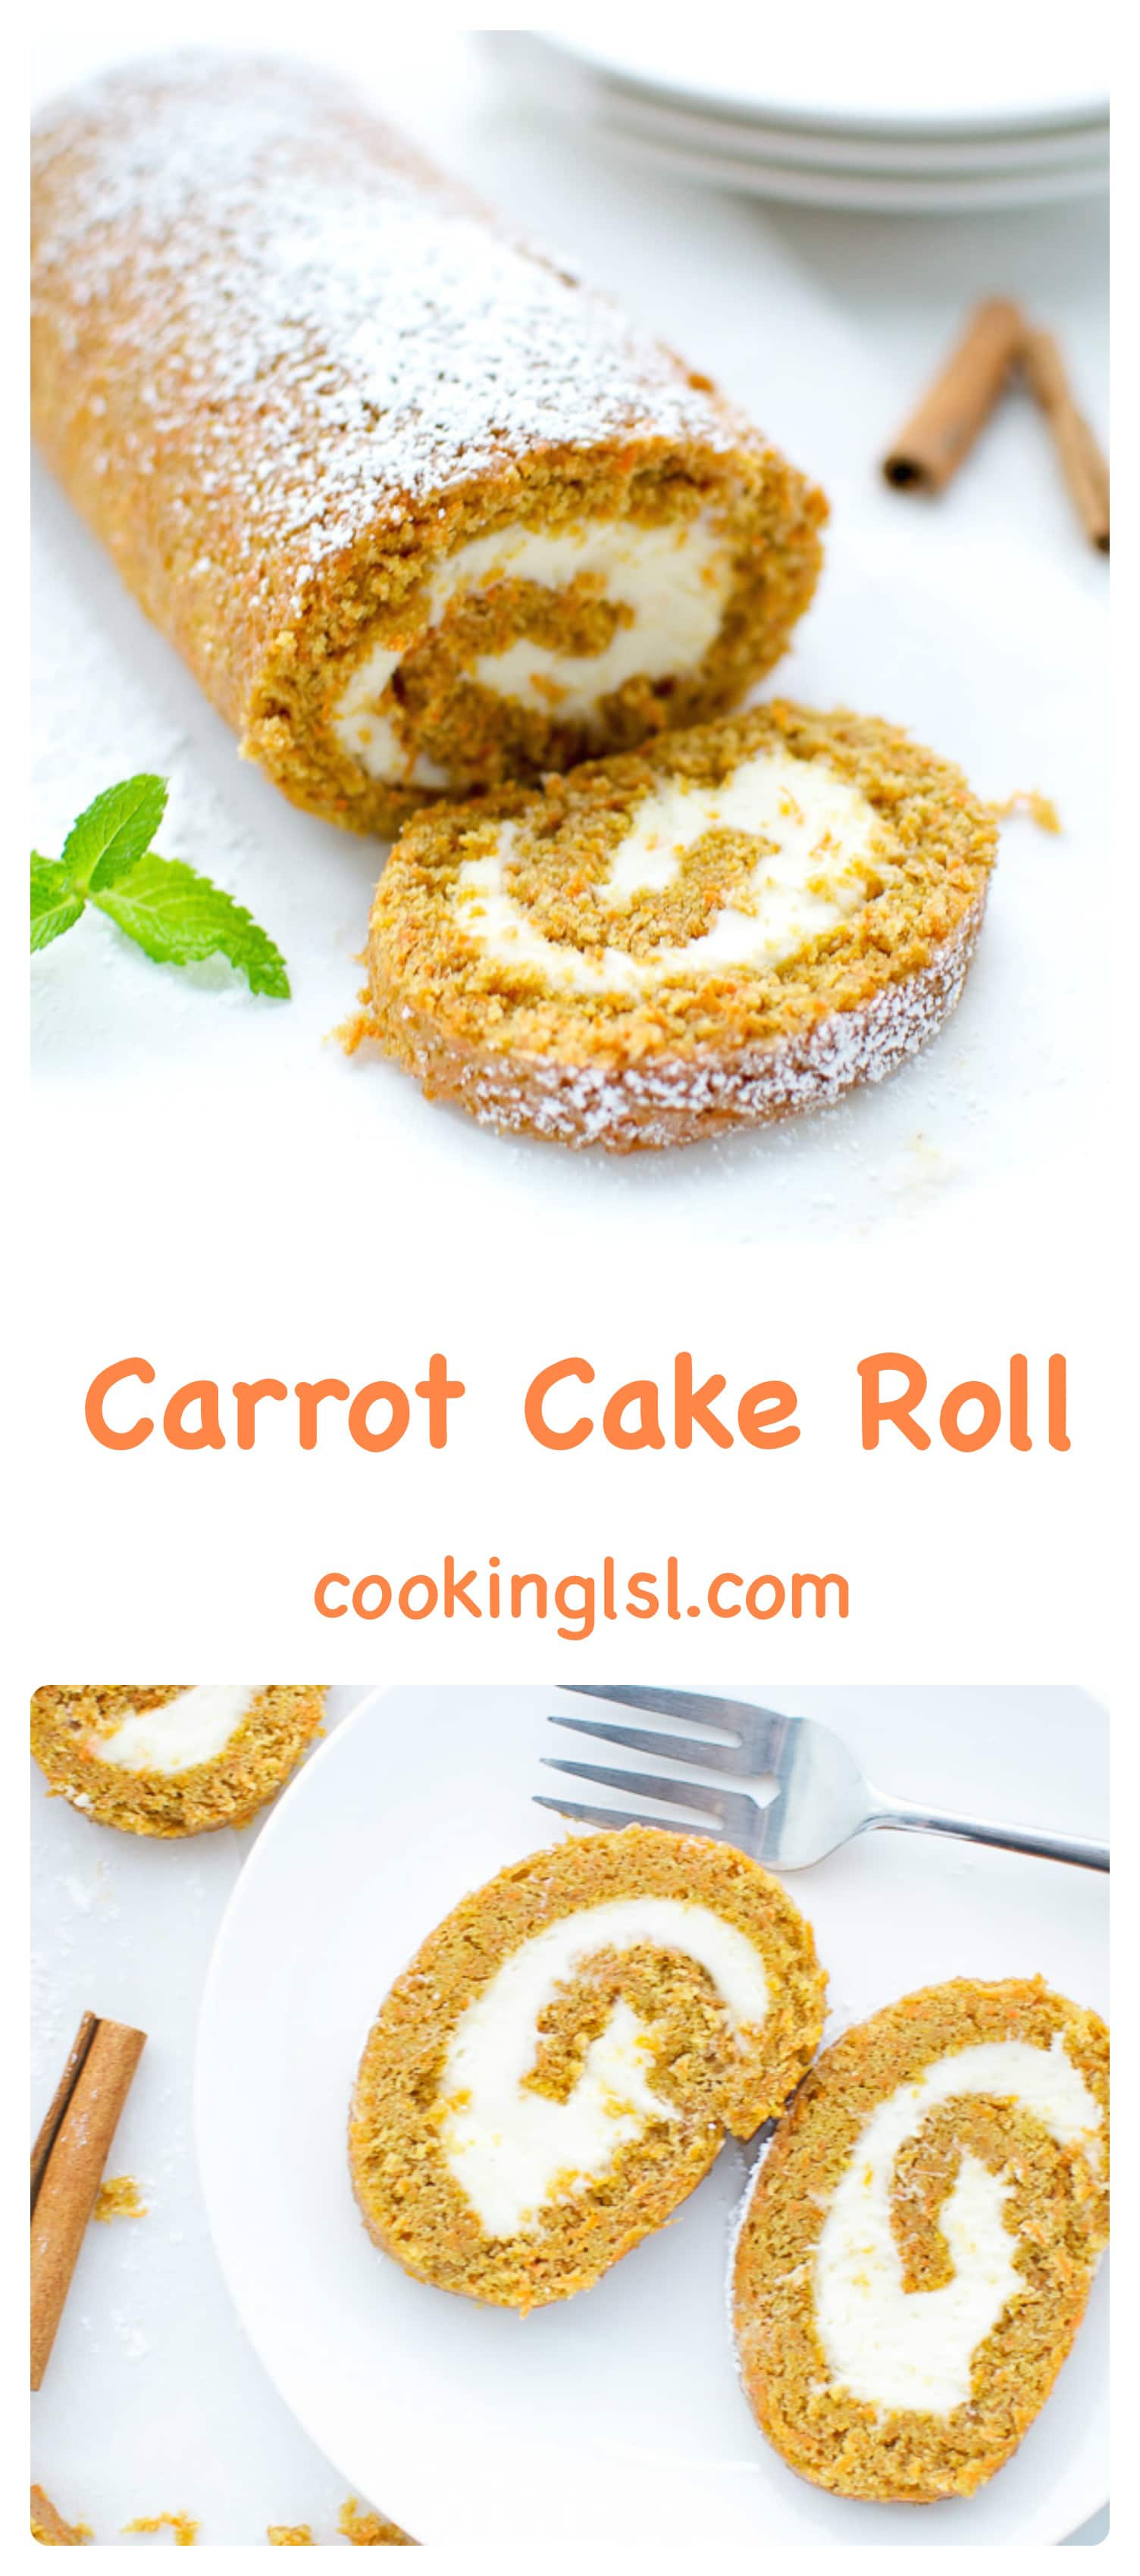 Carrot-Cake-Roll-With-Cream-Cheese-Filling